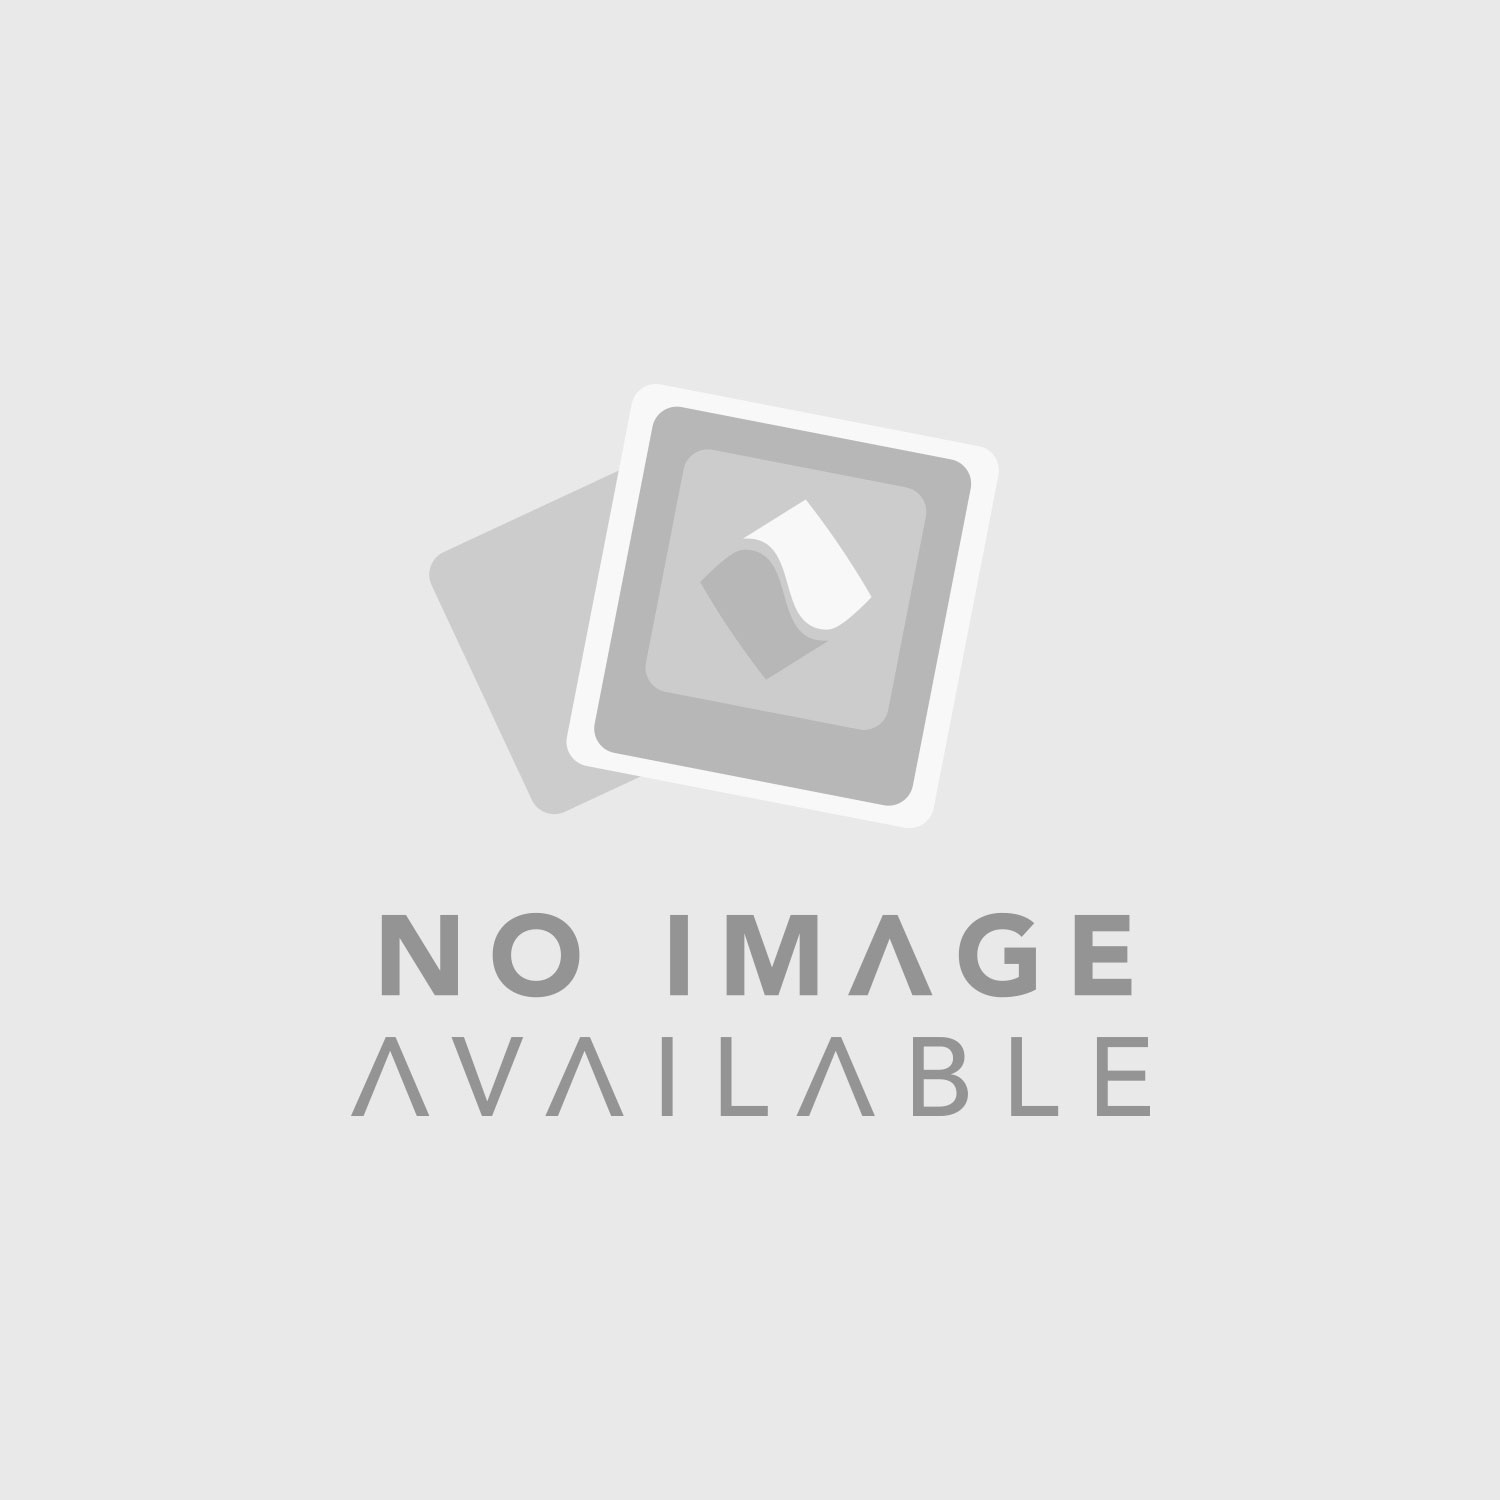 Neutrik NL8MPR 8-Pole speakON Panel Mount Connector